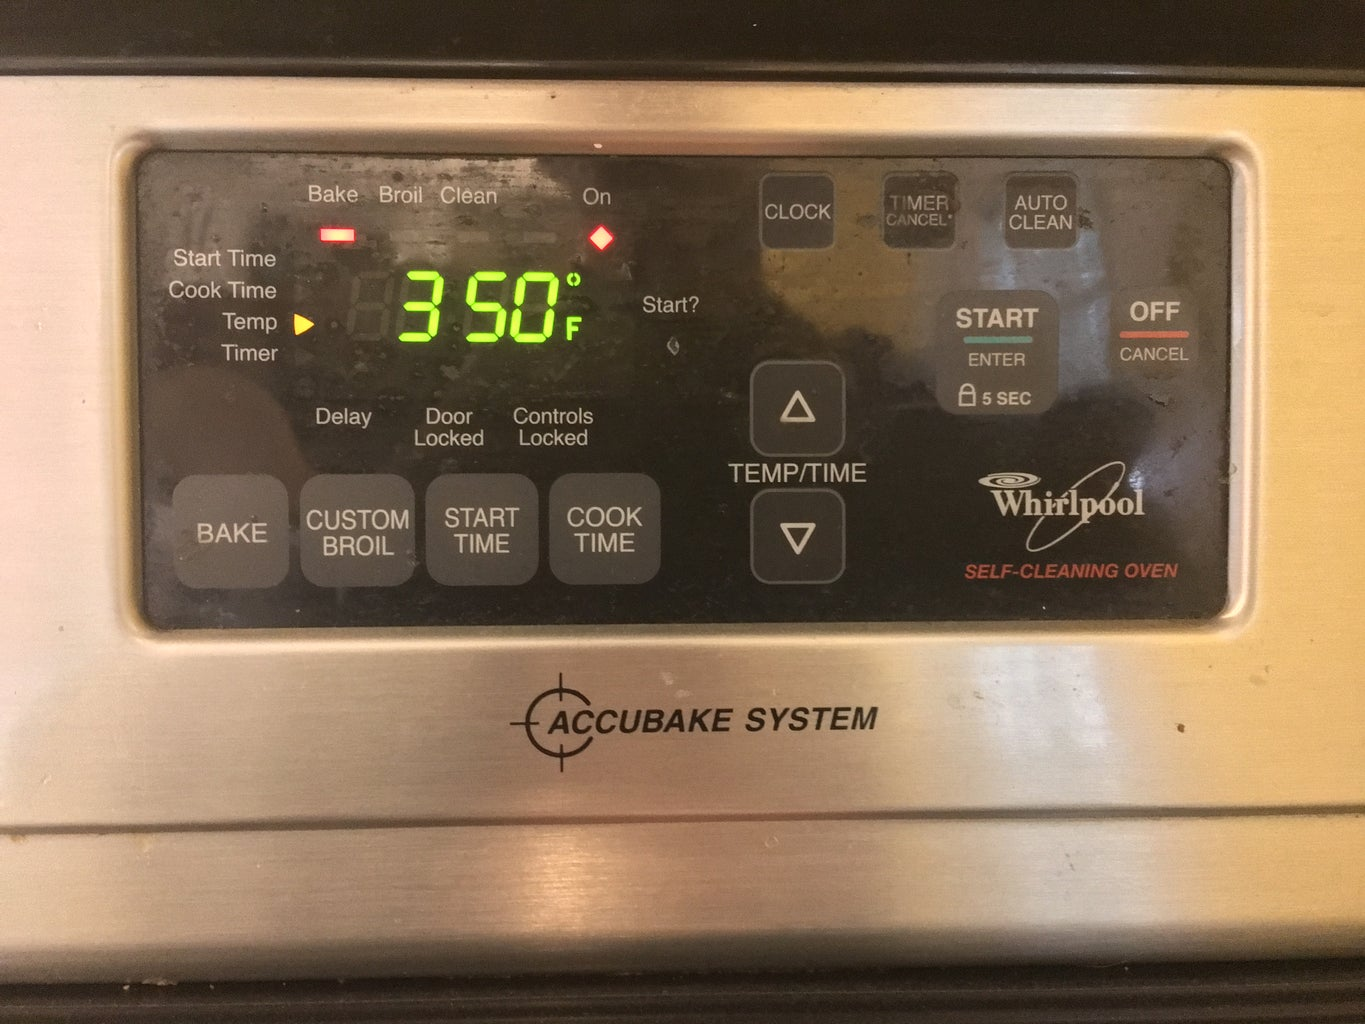 Pre-heat Your Oven!